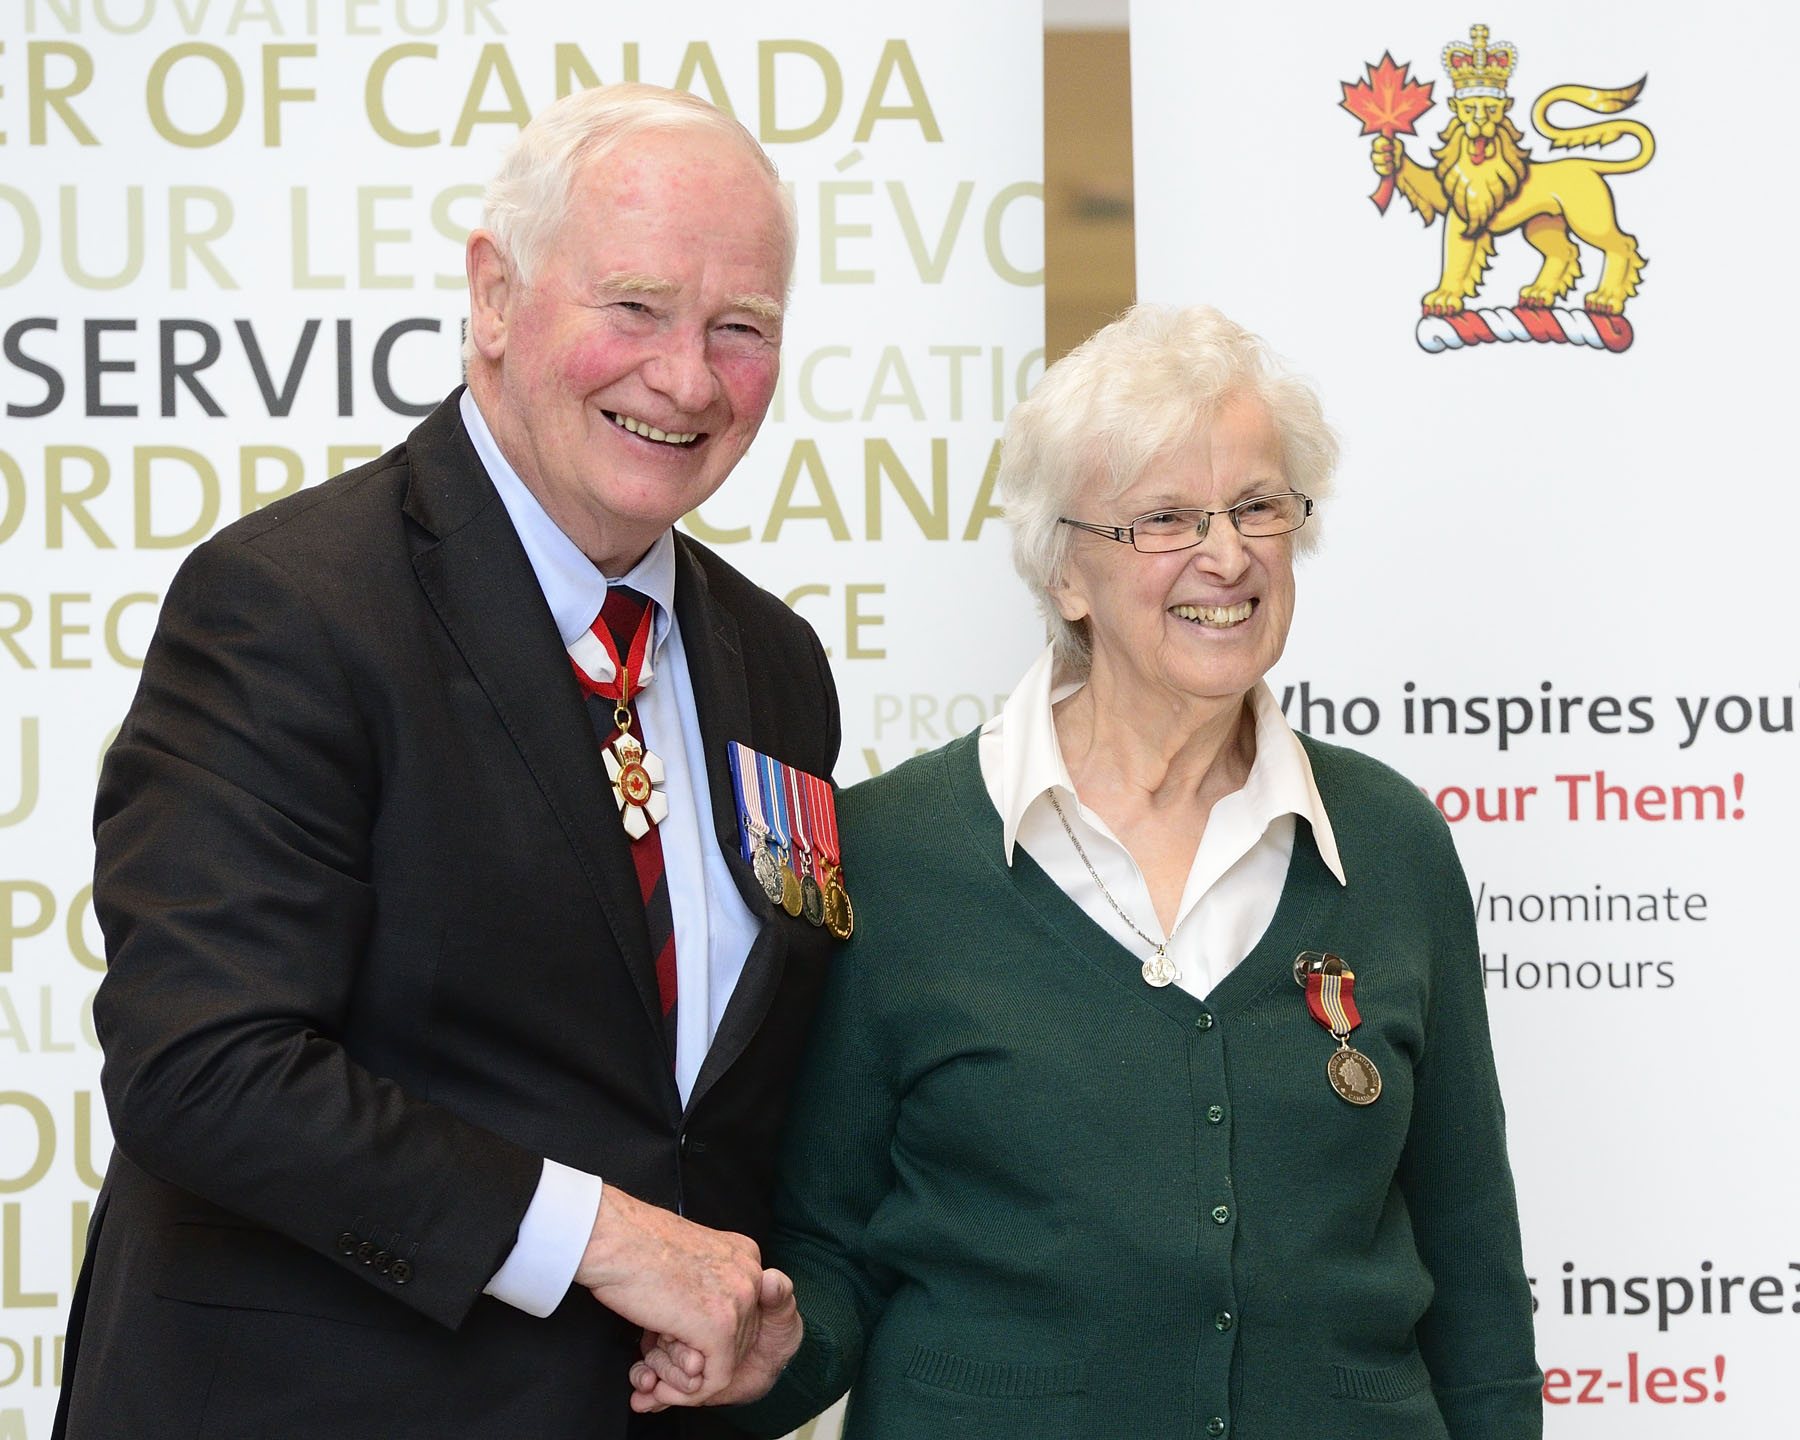 His Excellency presented the Sovereign's Medal for Volunteers to Virginia Lafleur. Since retiring in 1998, Sister Virginia has given of her time and attention to those in need in the Montréal community. She has helped shelter the homeless, feed the hungry, shepherd the ailing to medical appointments, and bring comfort to critically ill infants and their parents during difficult times.